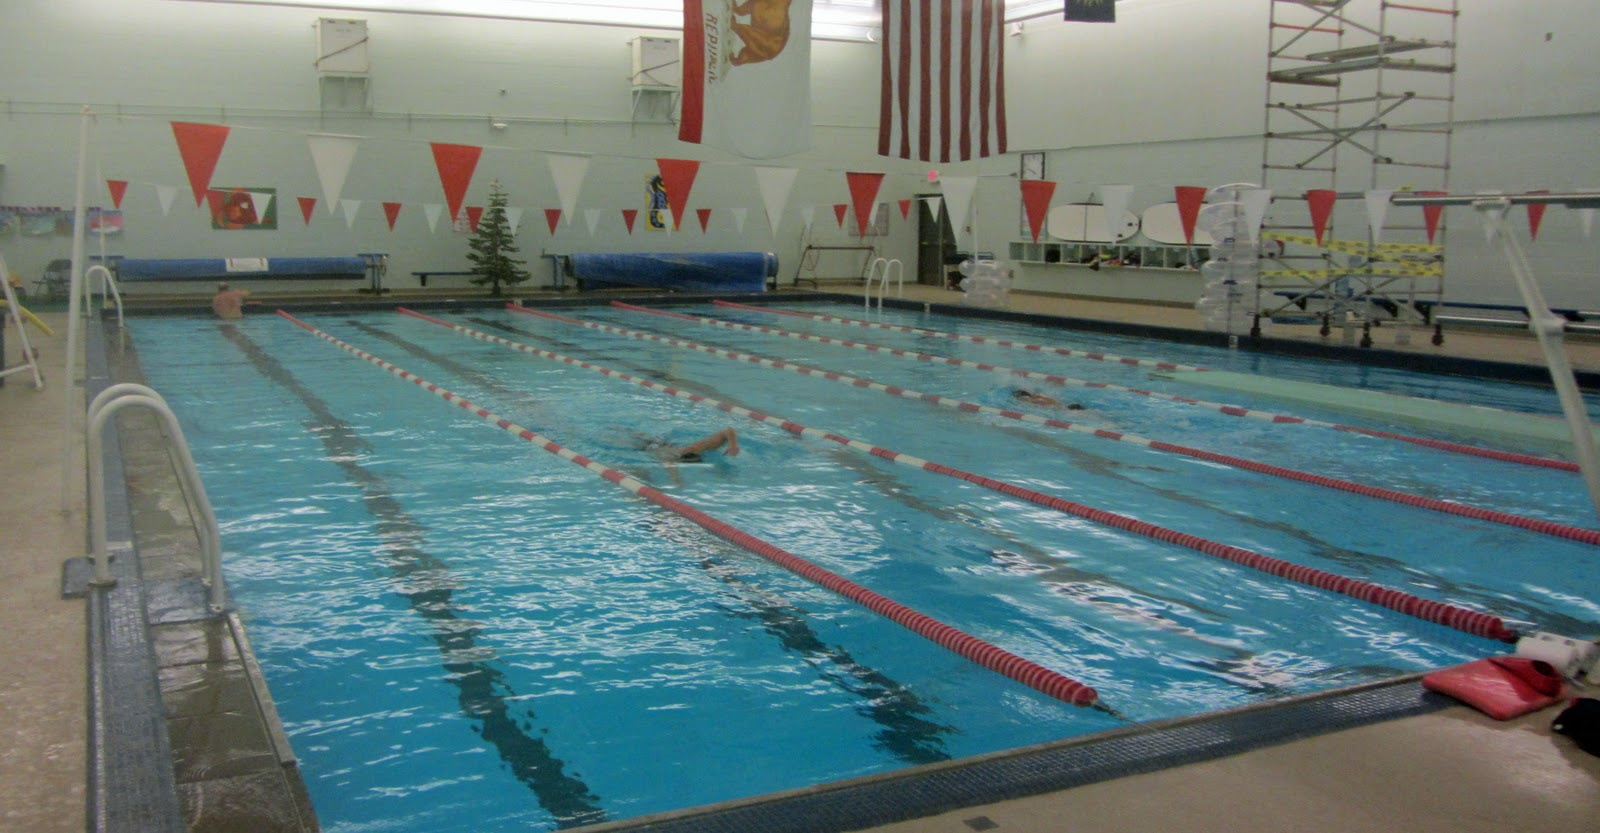 olympic swimming pool 2012. The Truckee Community Indoor Pool. Olympic Swimming Pool 2012 H